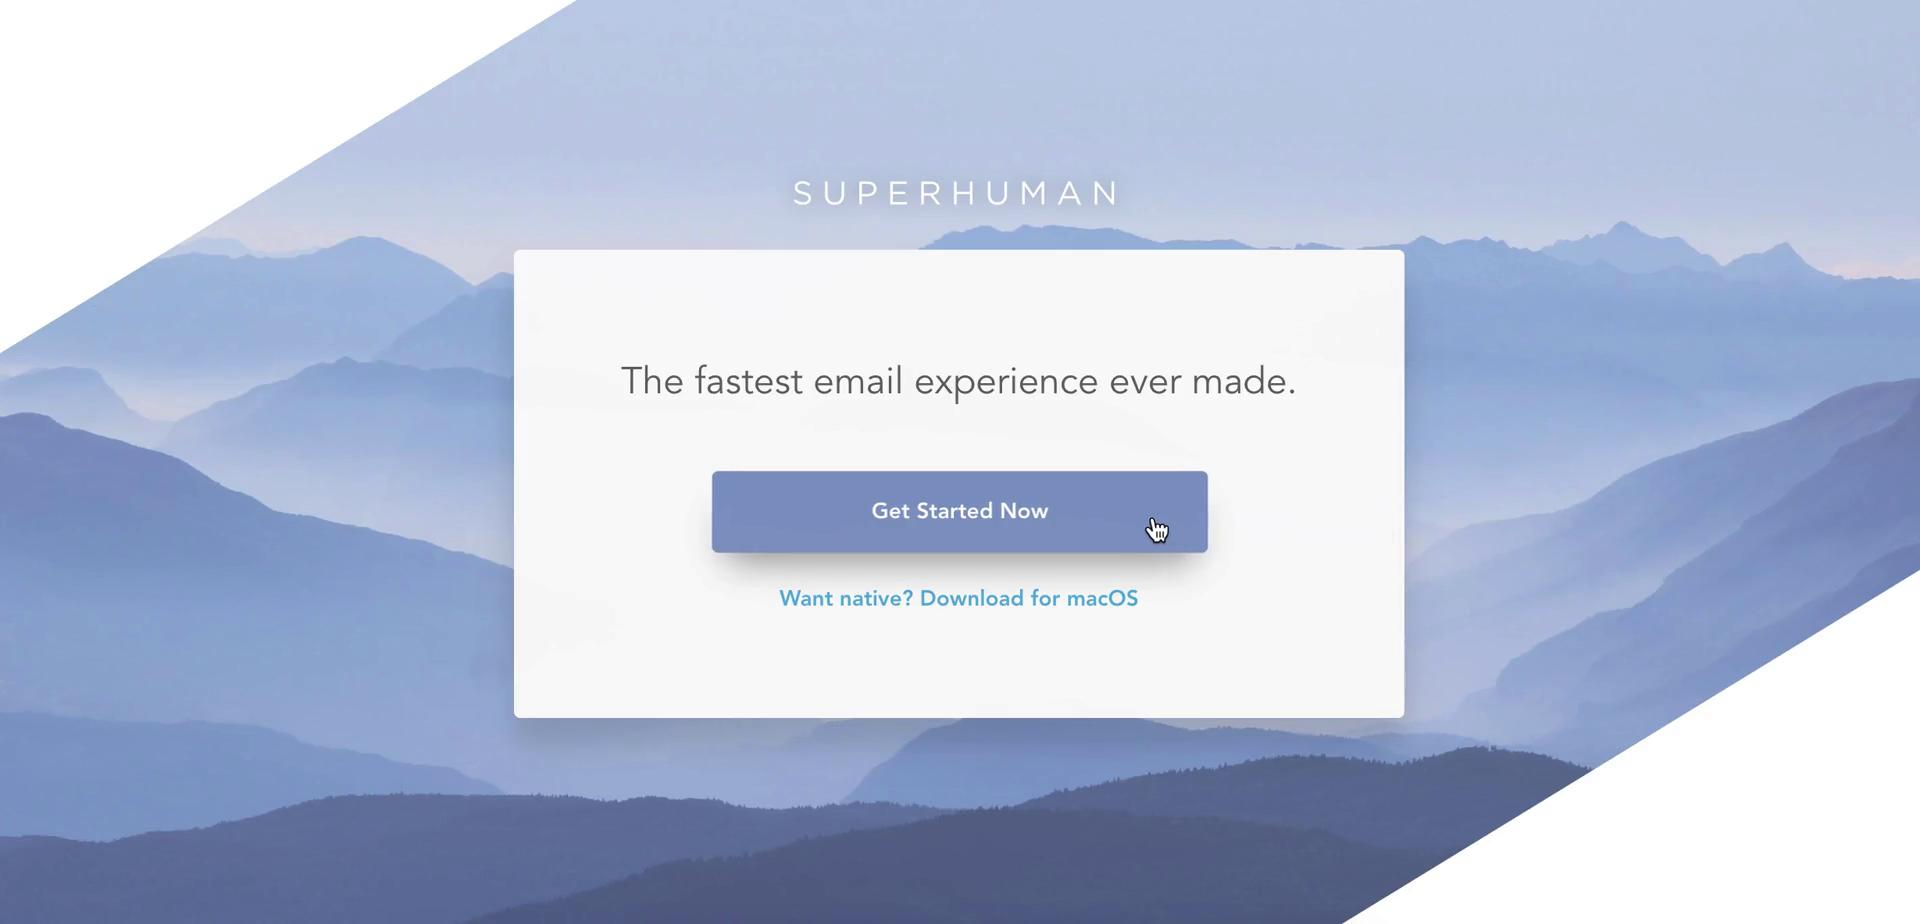 Onboarding on Superhuman video screenshot